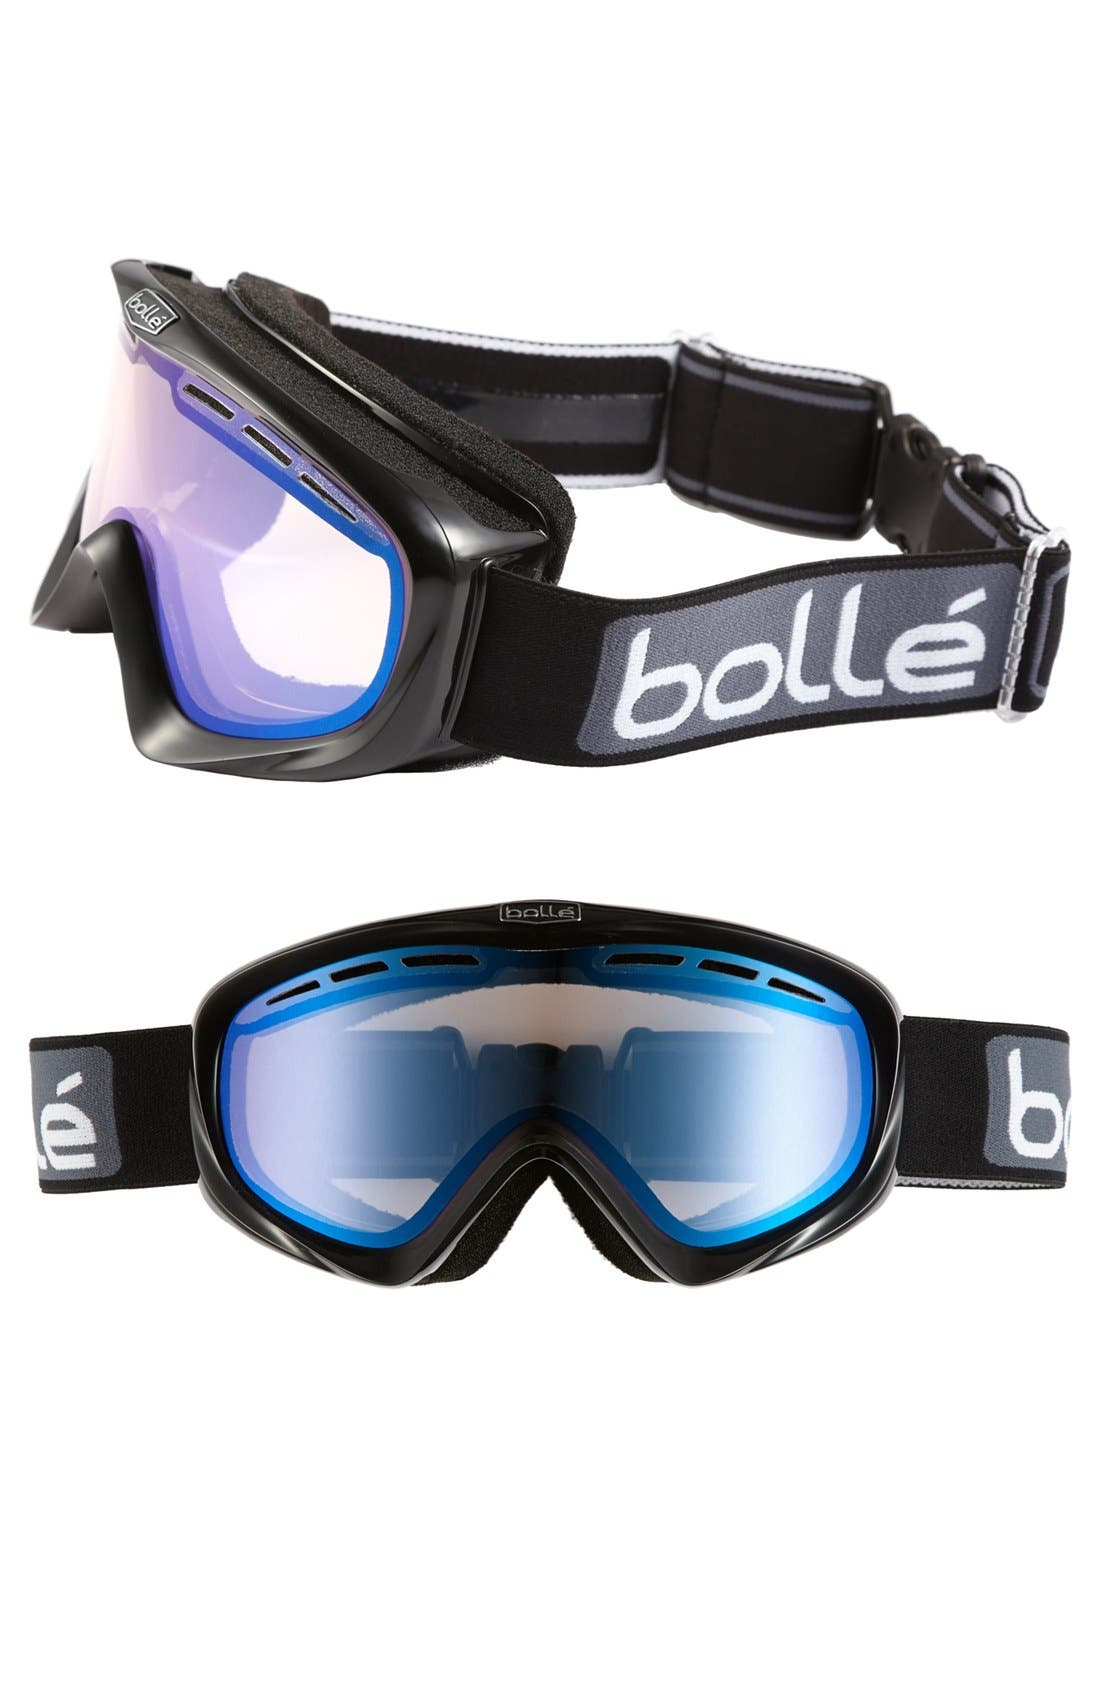 Alternate Image 1 Selected - Bolle 'Y6 OTG' Ski Goggles